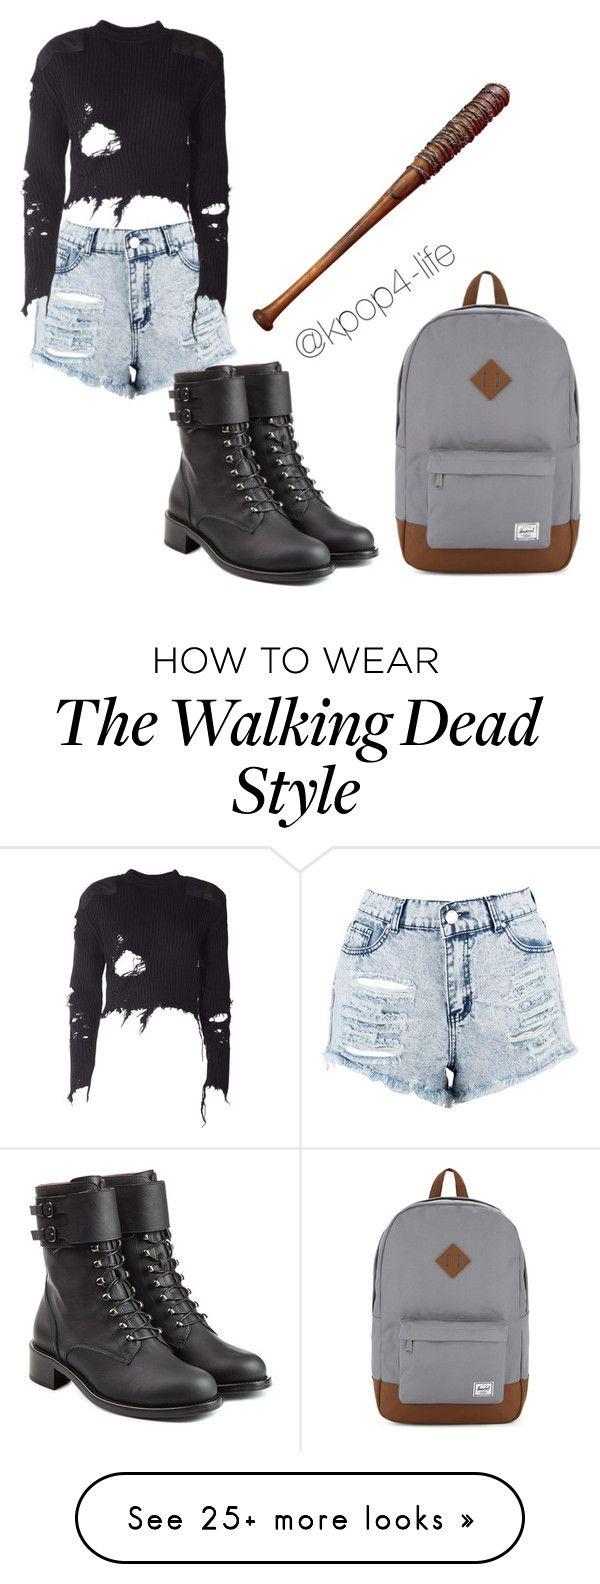 """""""The Walking Dead"""" by kpop4-life on Polyvore featuring Boohoo, Philosophy di Lorenzo Serafini, Herschel Supply Co., Lucille and adidas Originals"""